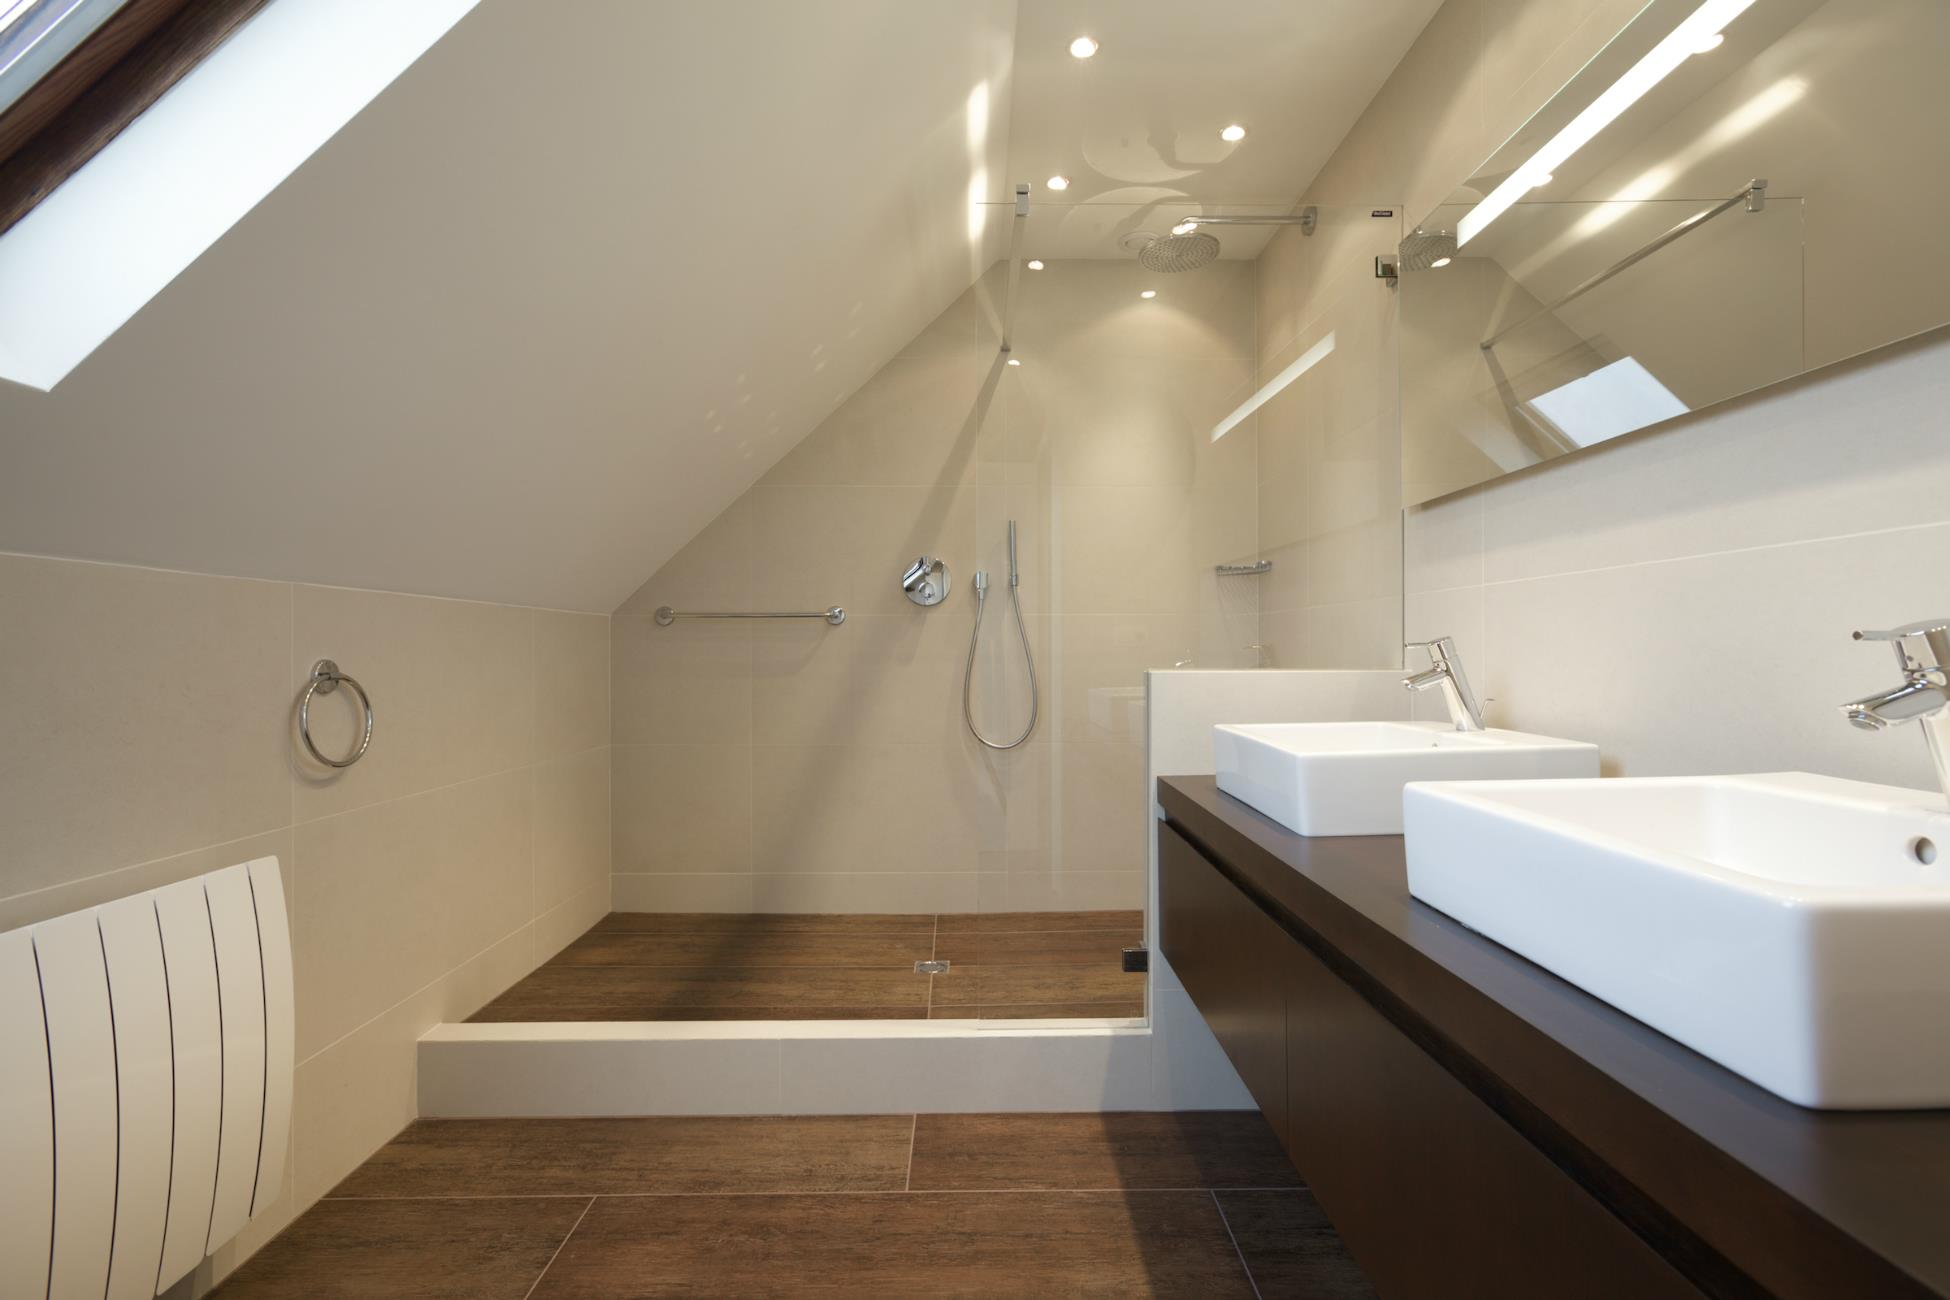 Architecte design et renovation salle de bain r alisations for Architecture salle de bain